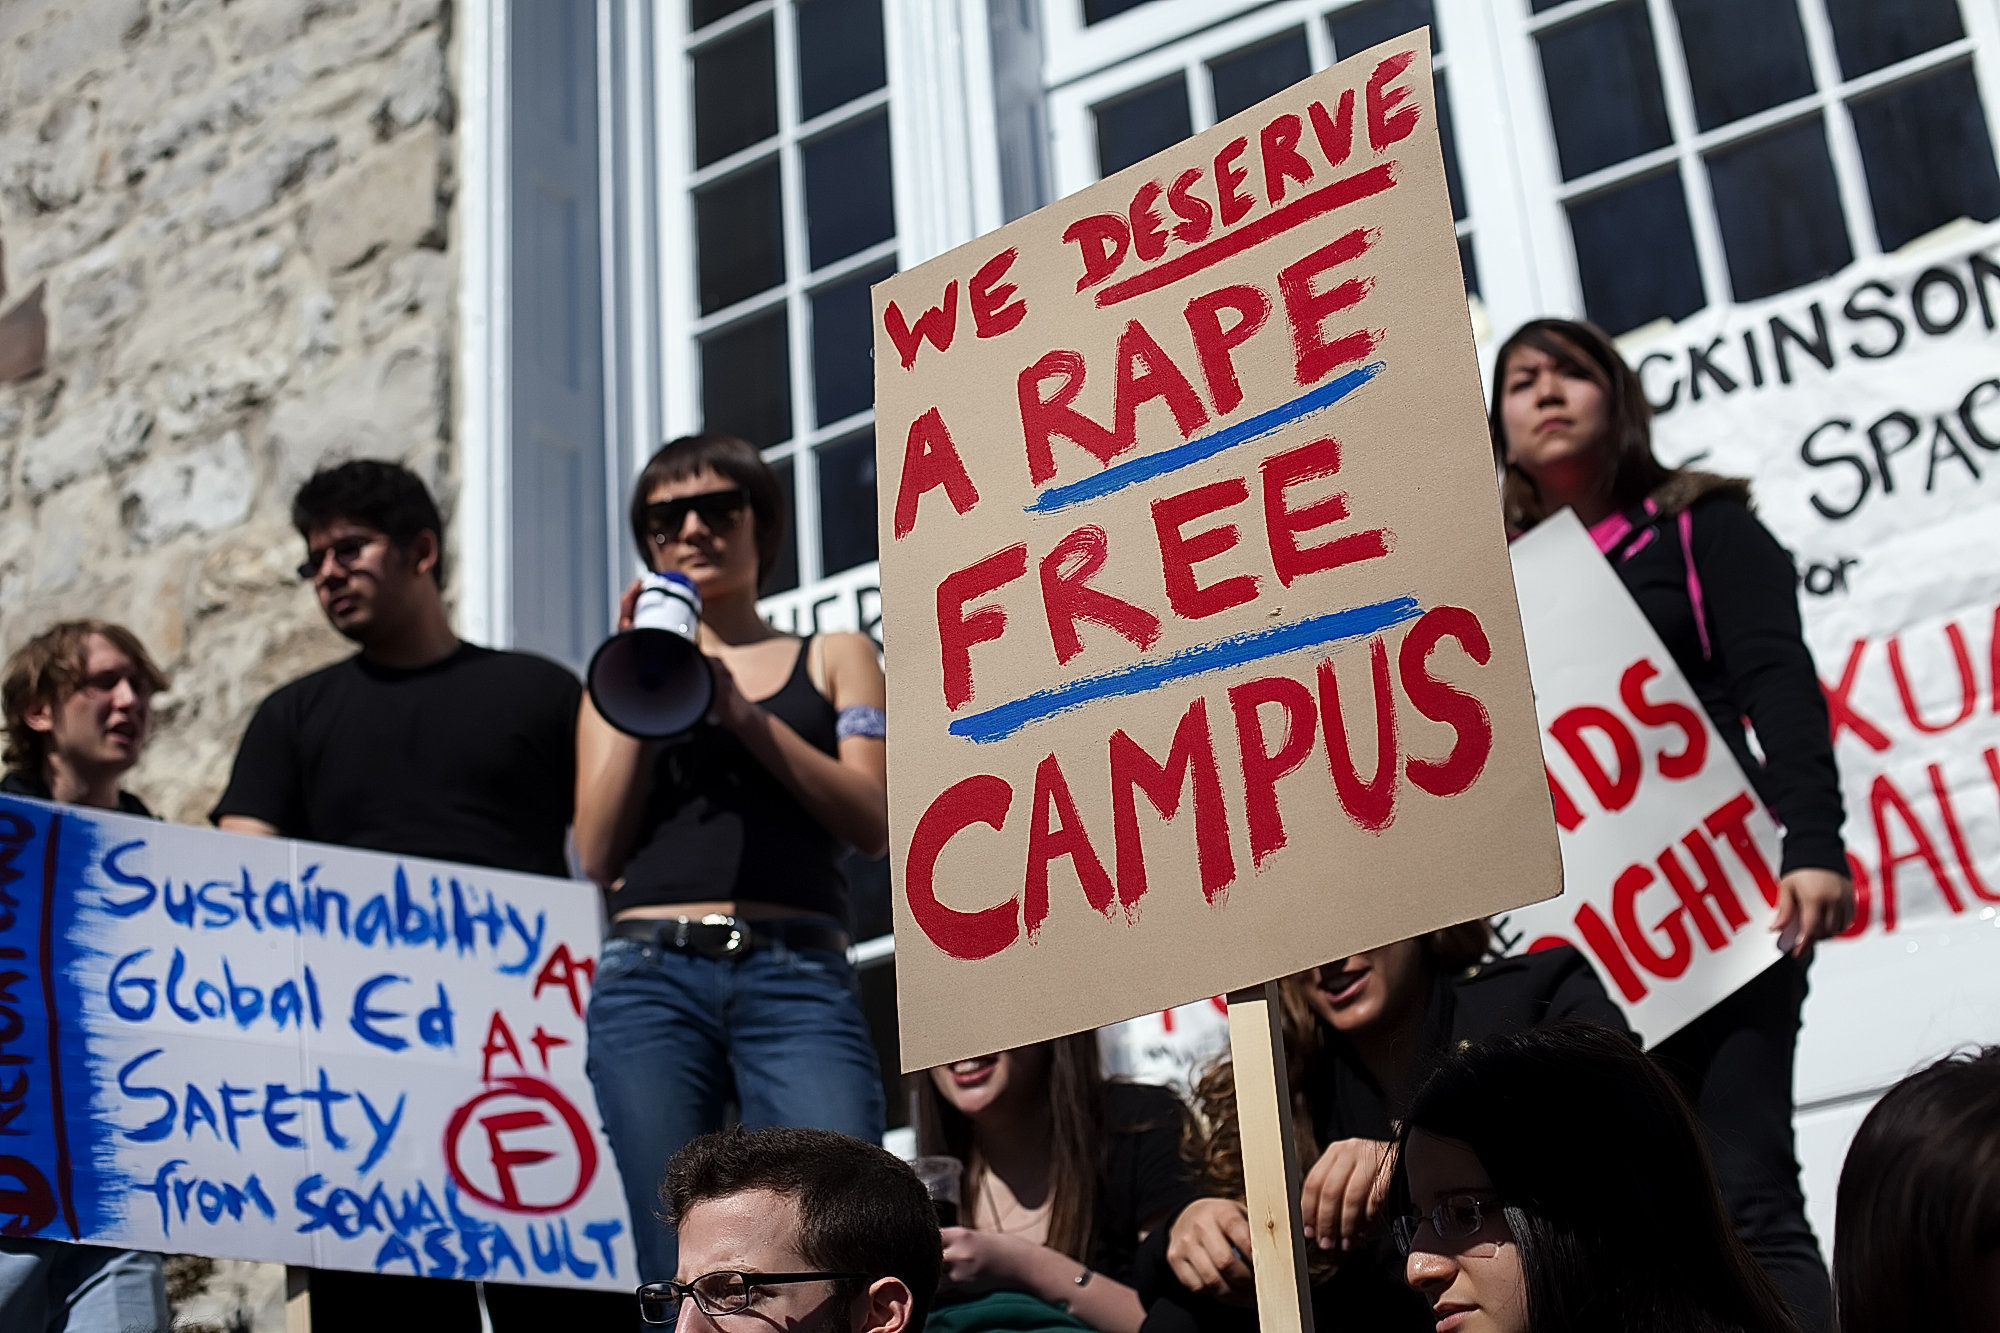 Campus Sexual Assaults